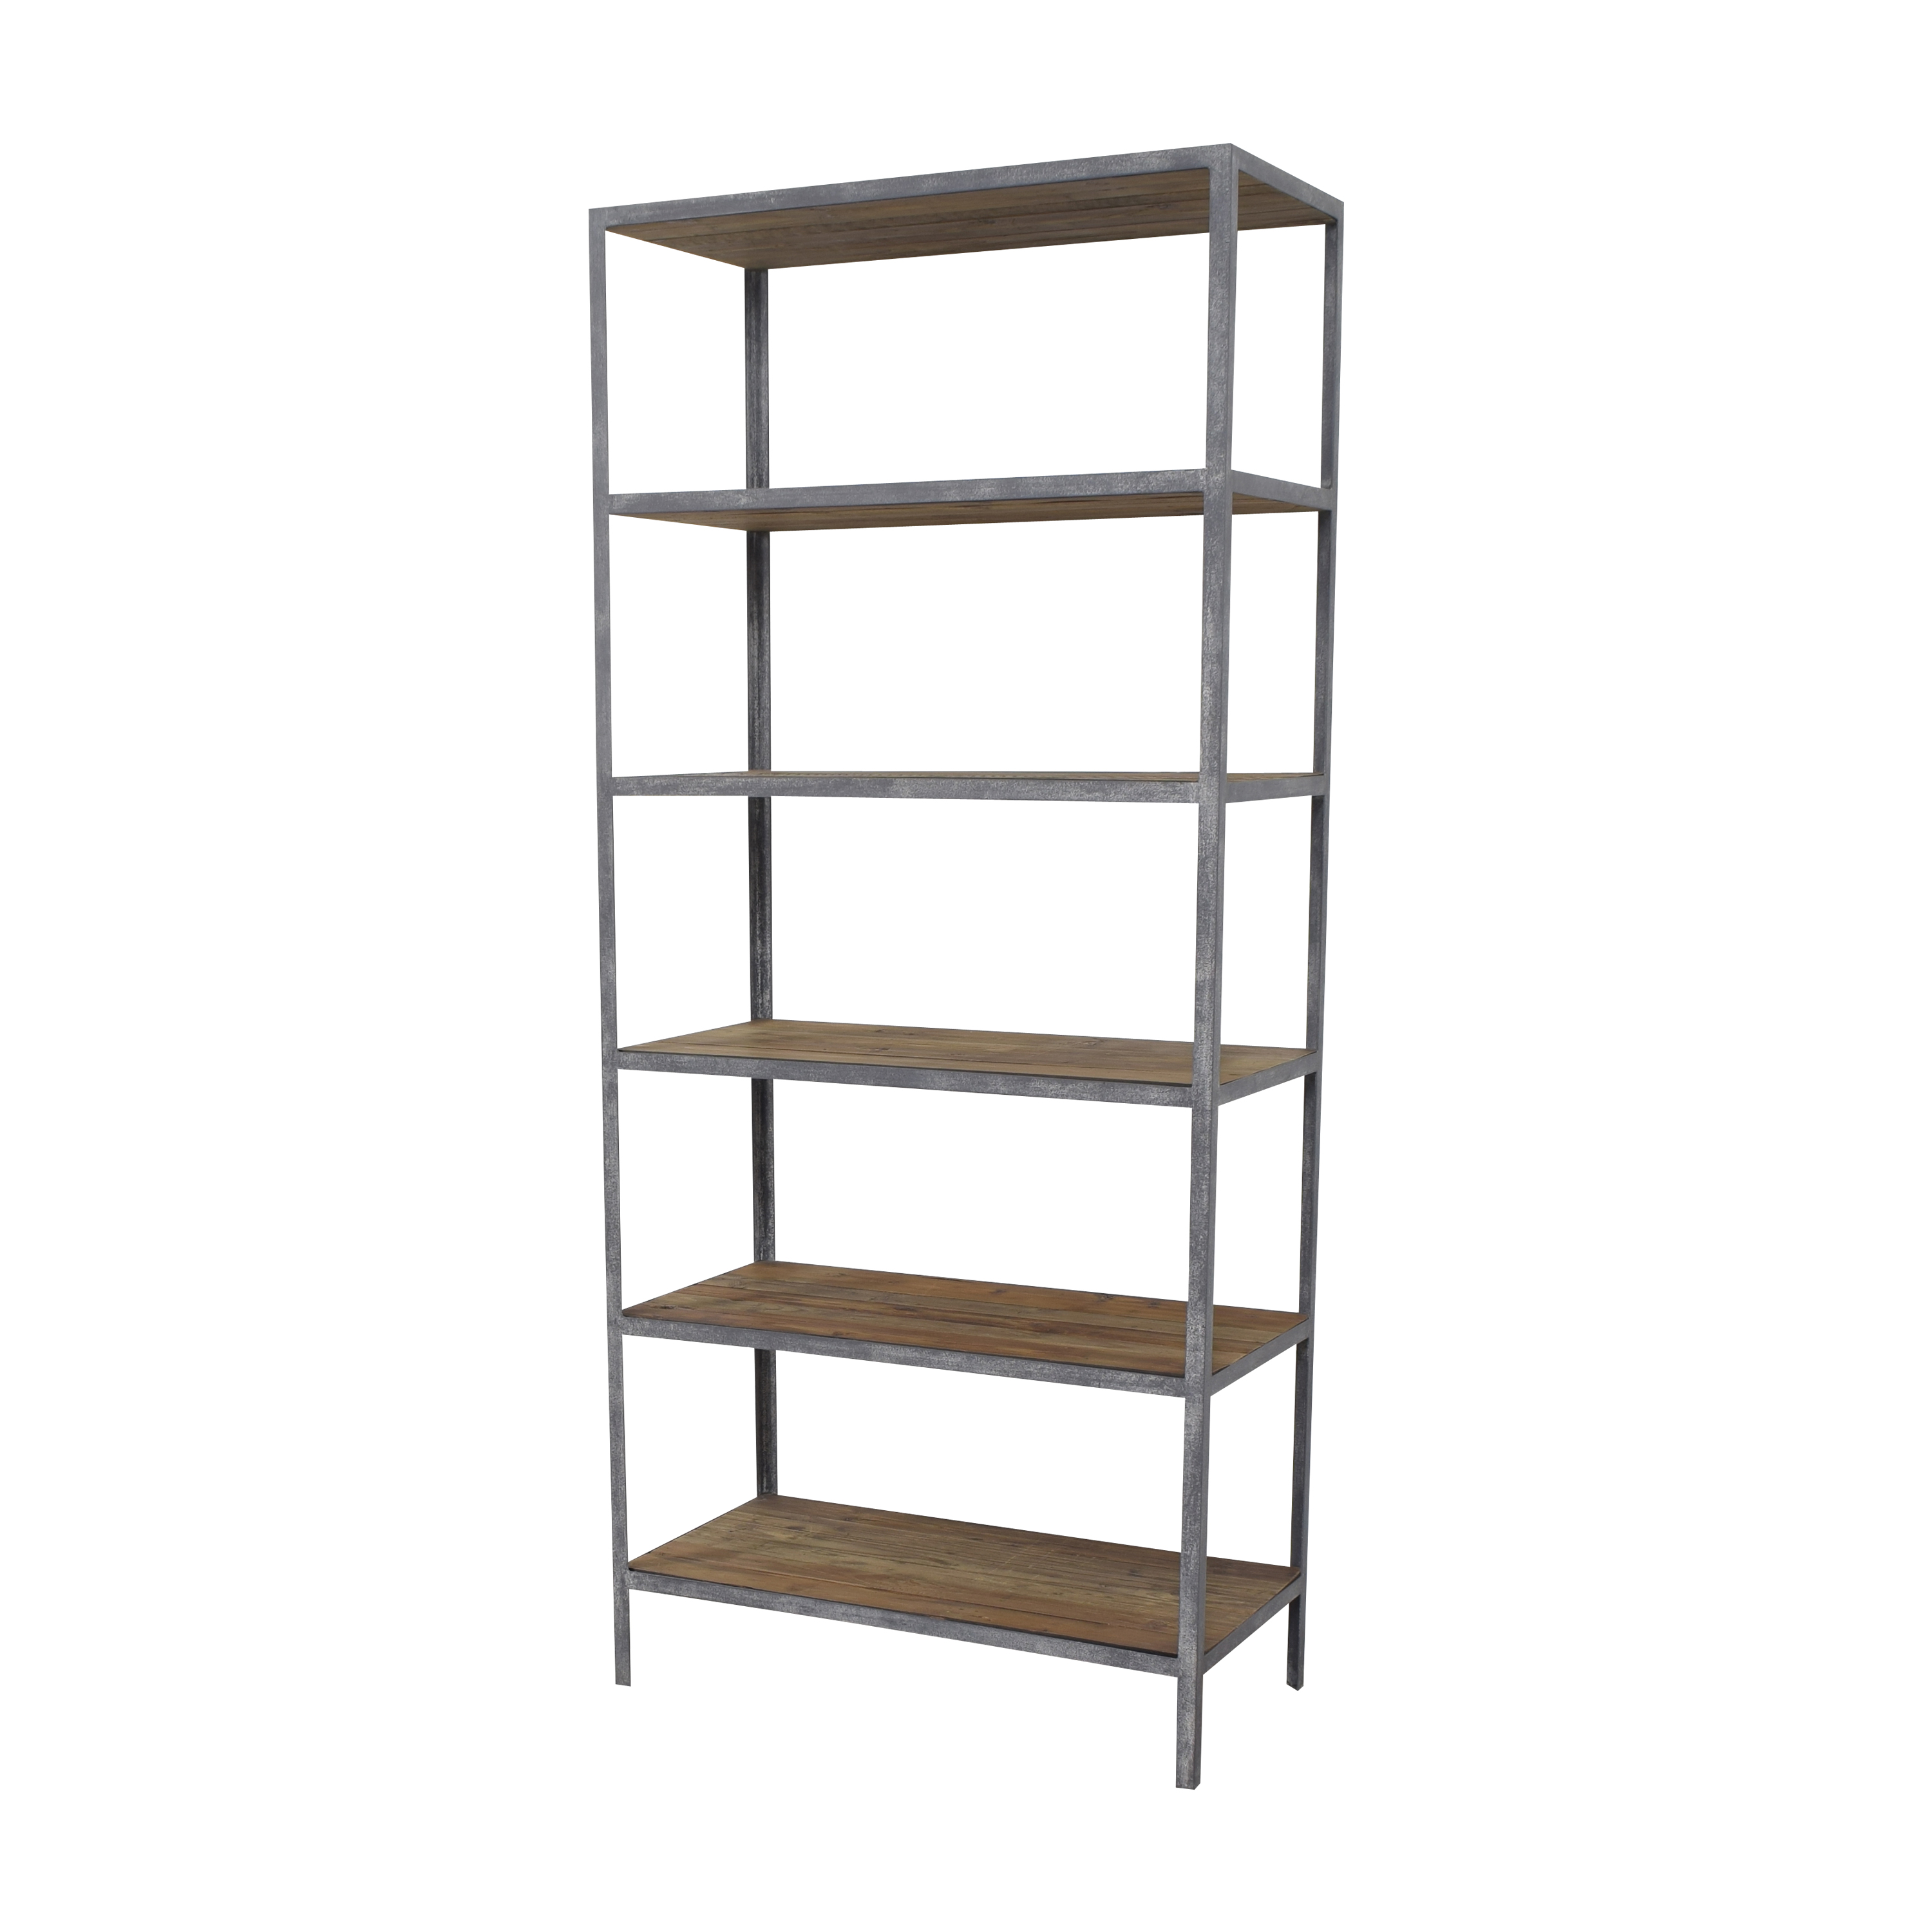 Restoration Hardware Restoration Hardware Vintage Industrial Single Shelving gray and brown